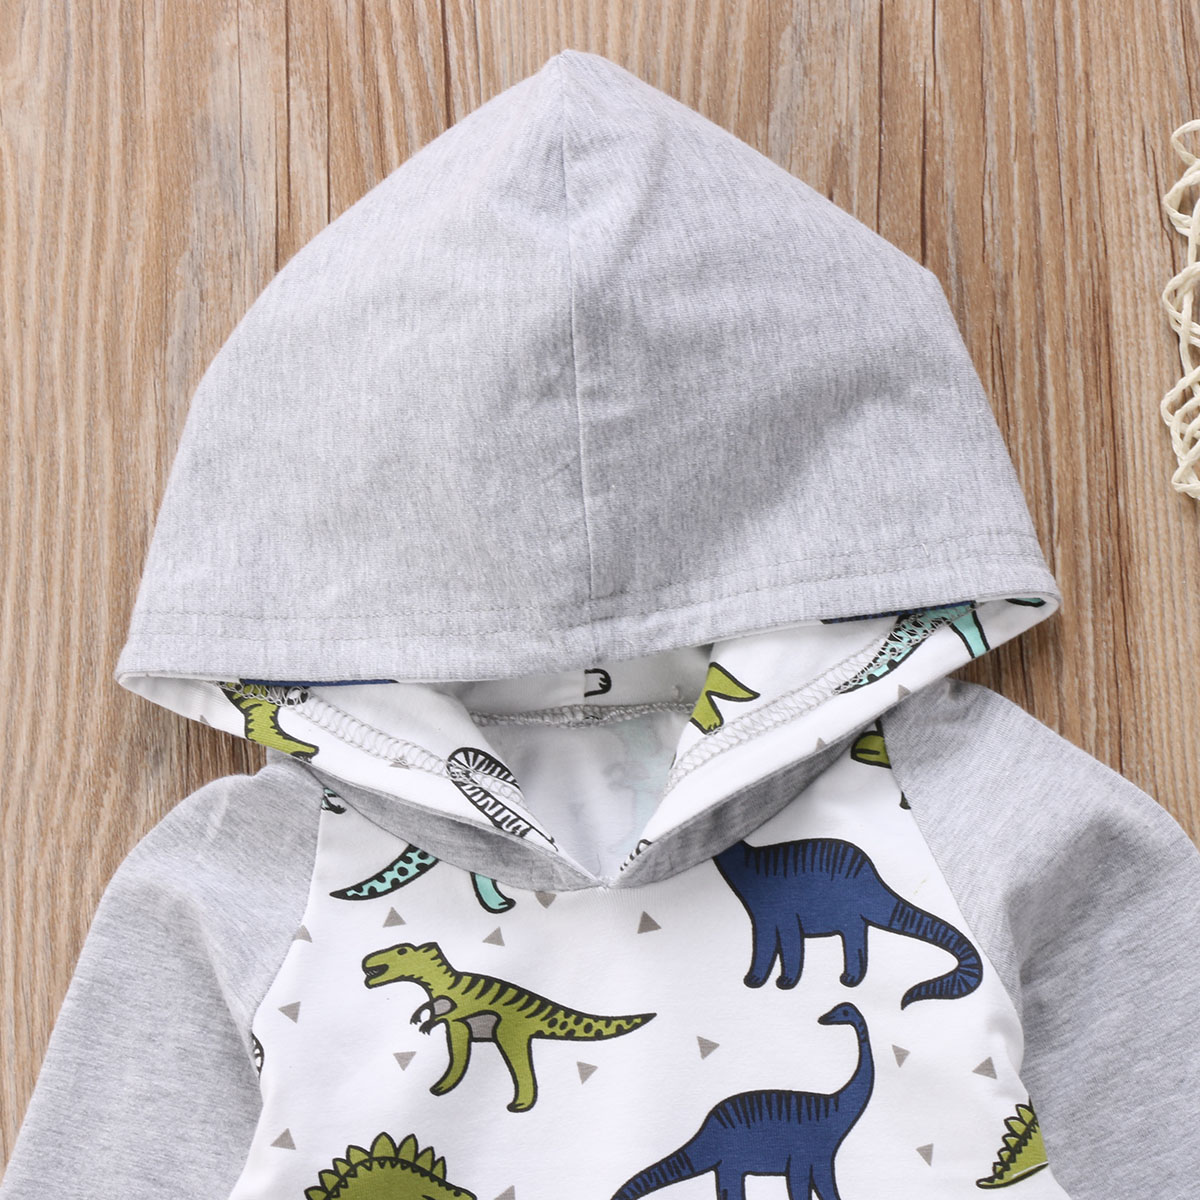 b75bdcc3423 2017 Brand New Toddler Infant Newborn Baby Girl Boy Dinosaur Hoodie Tops  Pant 2PCs Set Spring Fall Casual Outfit Cotton Clothes Tags: